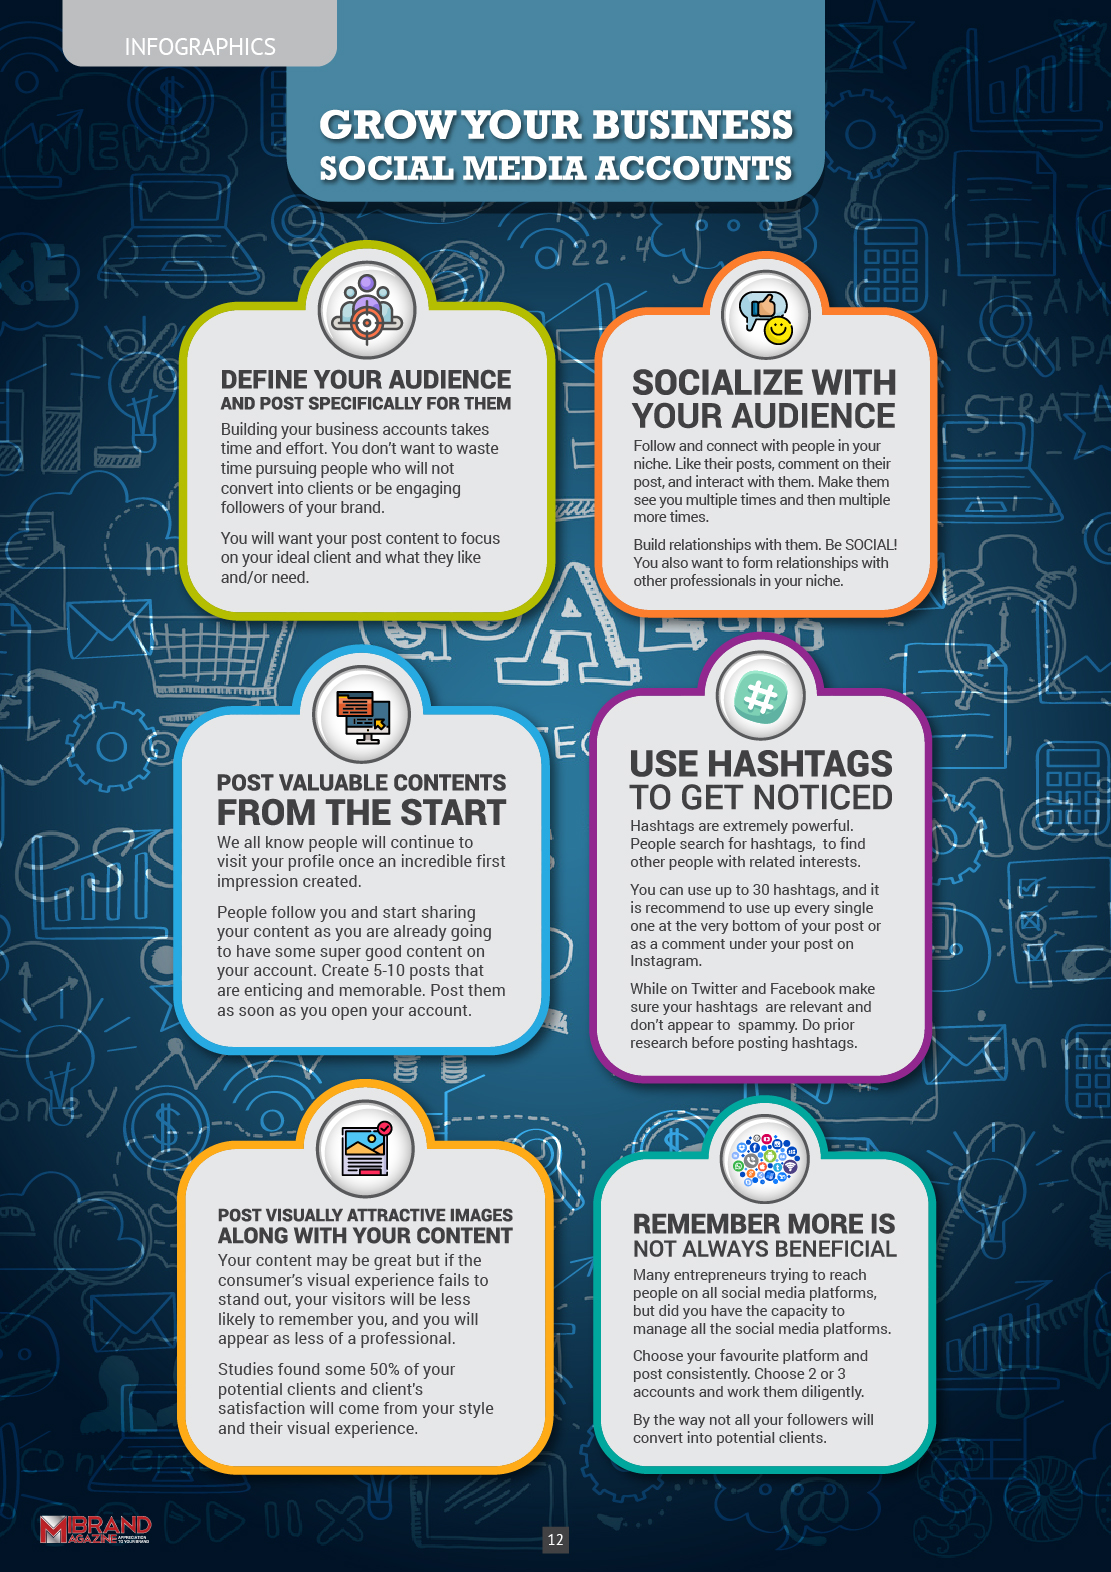 Infographics Grow Your Business with Social Media Accounts